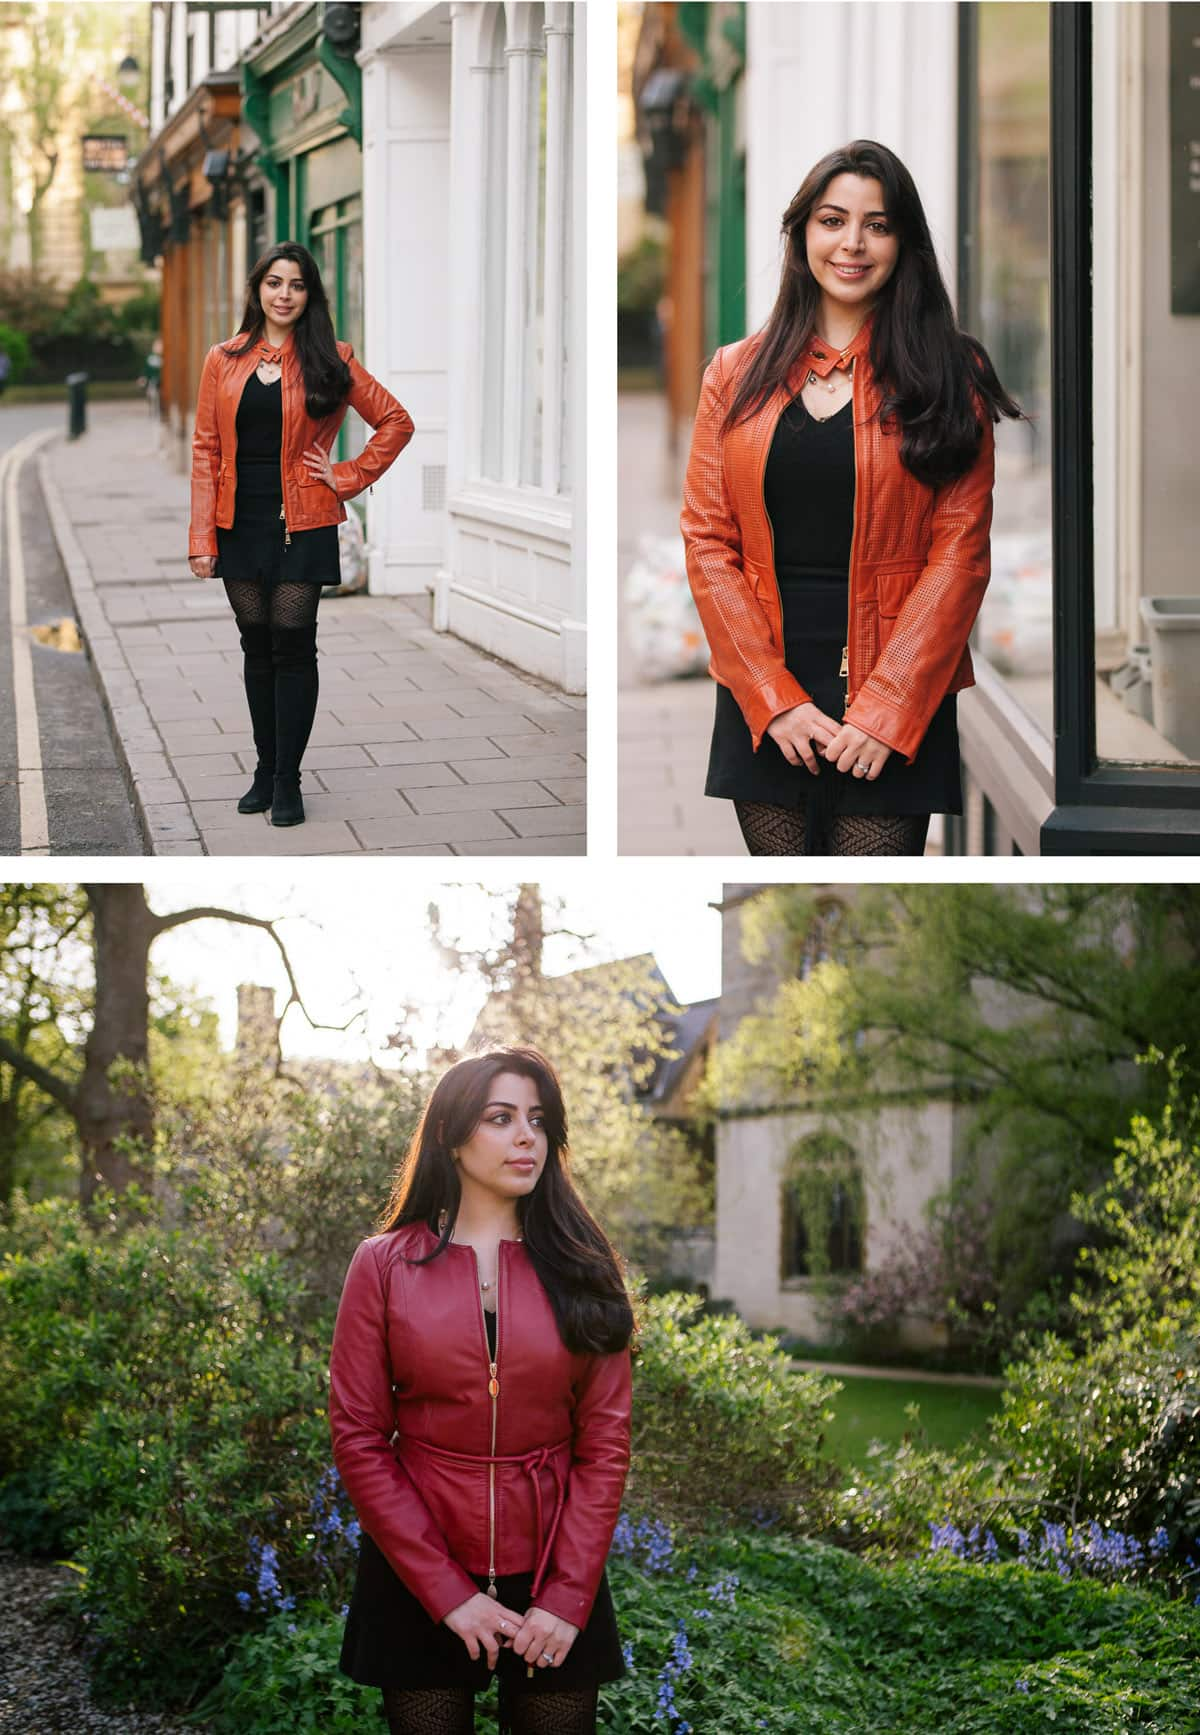 Collage of images from Oxford portrait shoot. Woman wearing black dress with different coloured jackets in and around the city